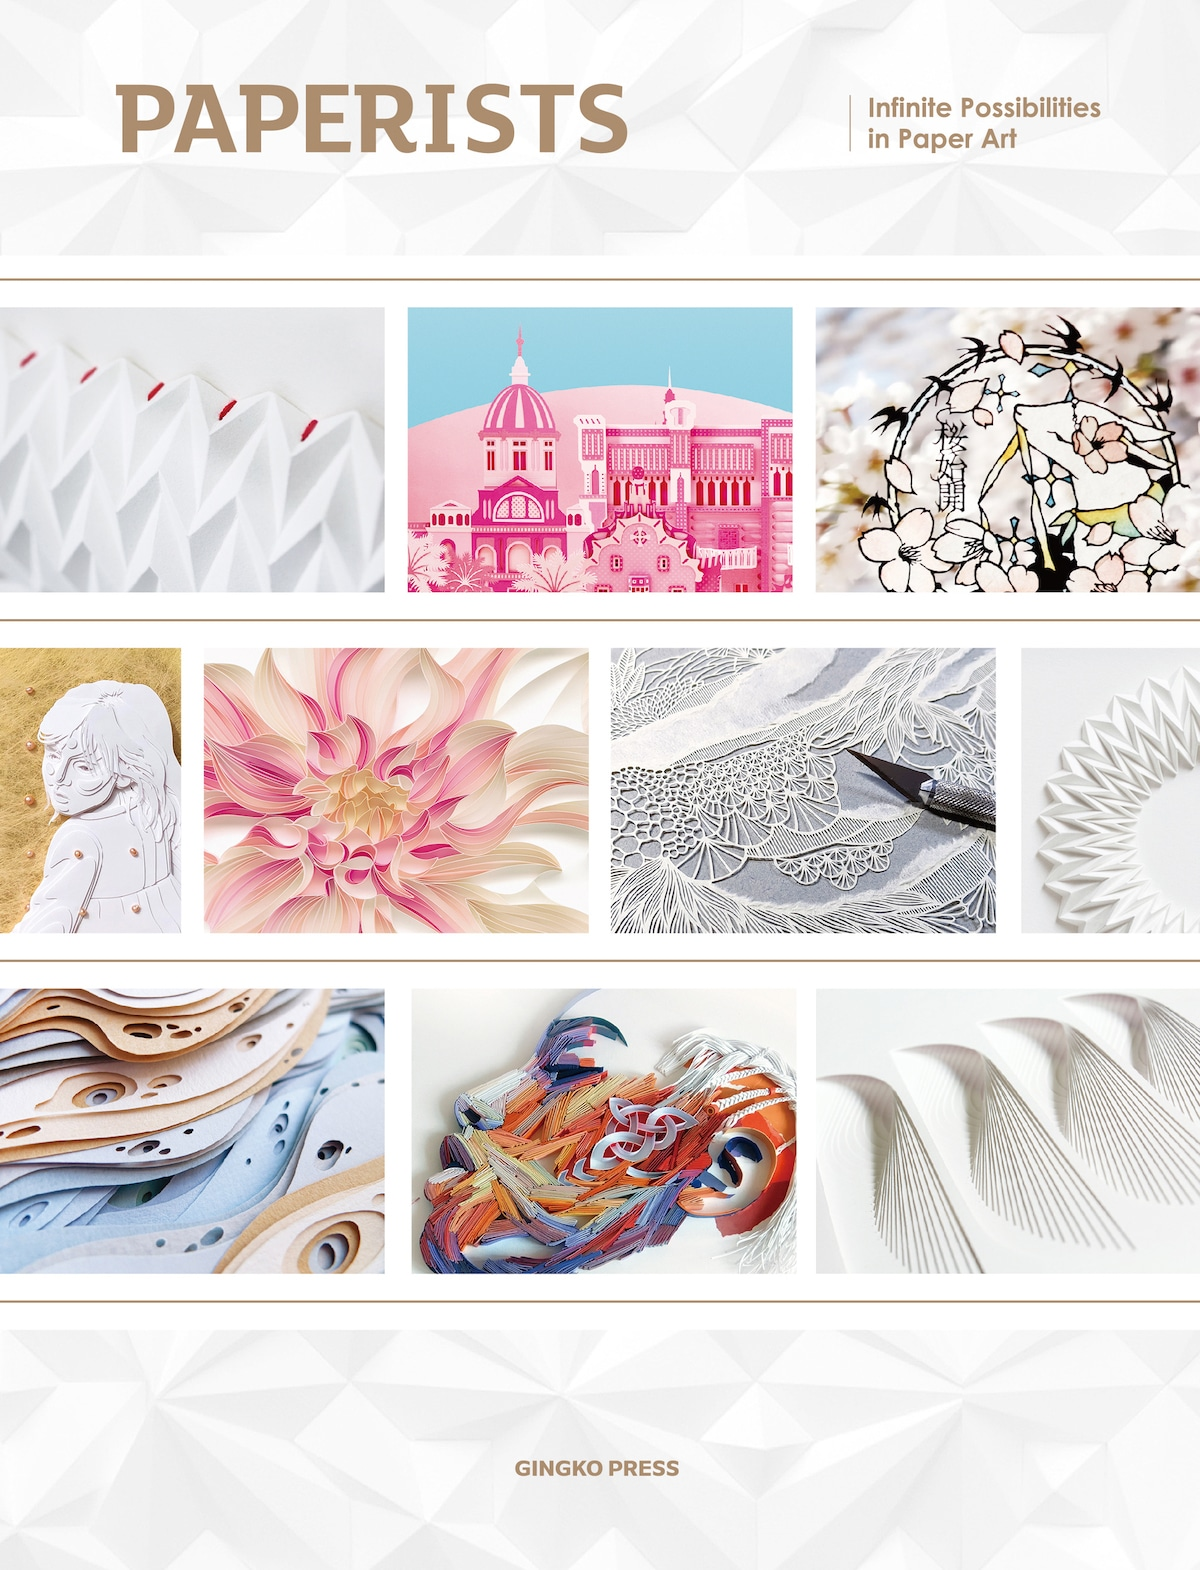 Images From Paper Art Book Called Paperists